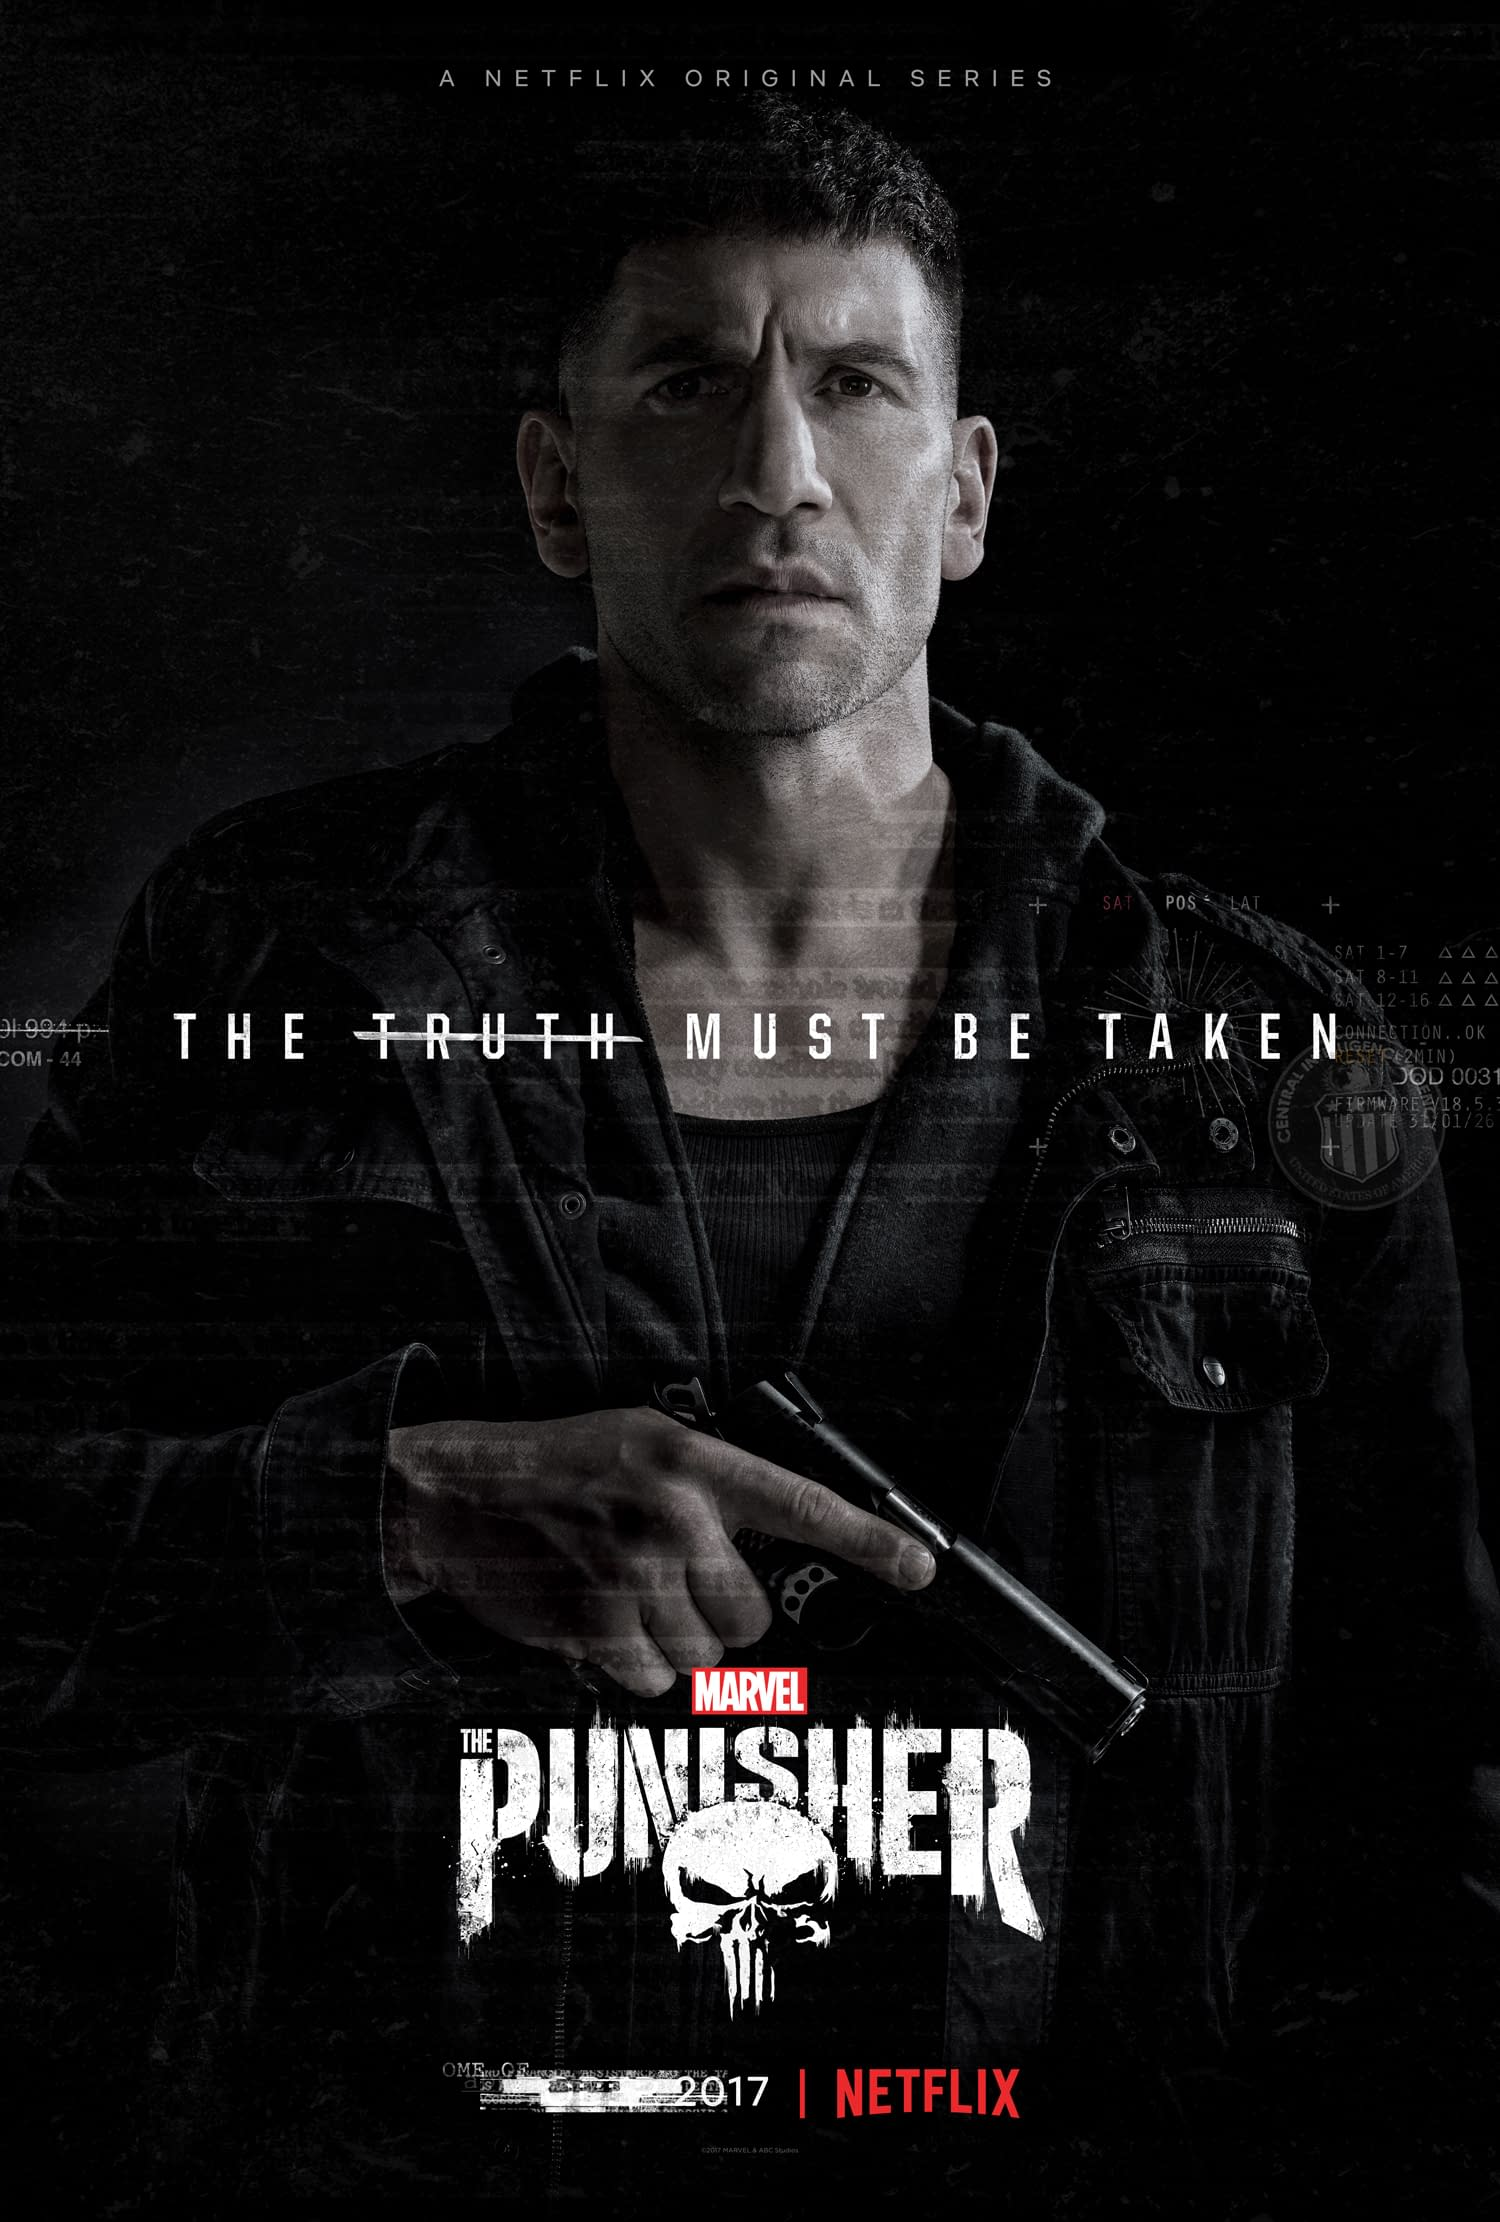 New The Punisher Motion Posters And More Viral Marketing